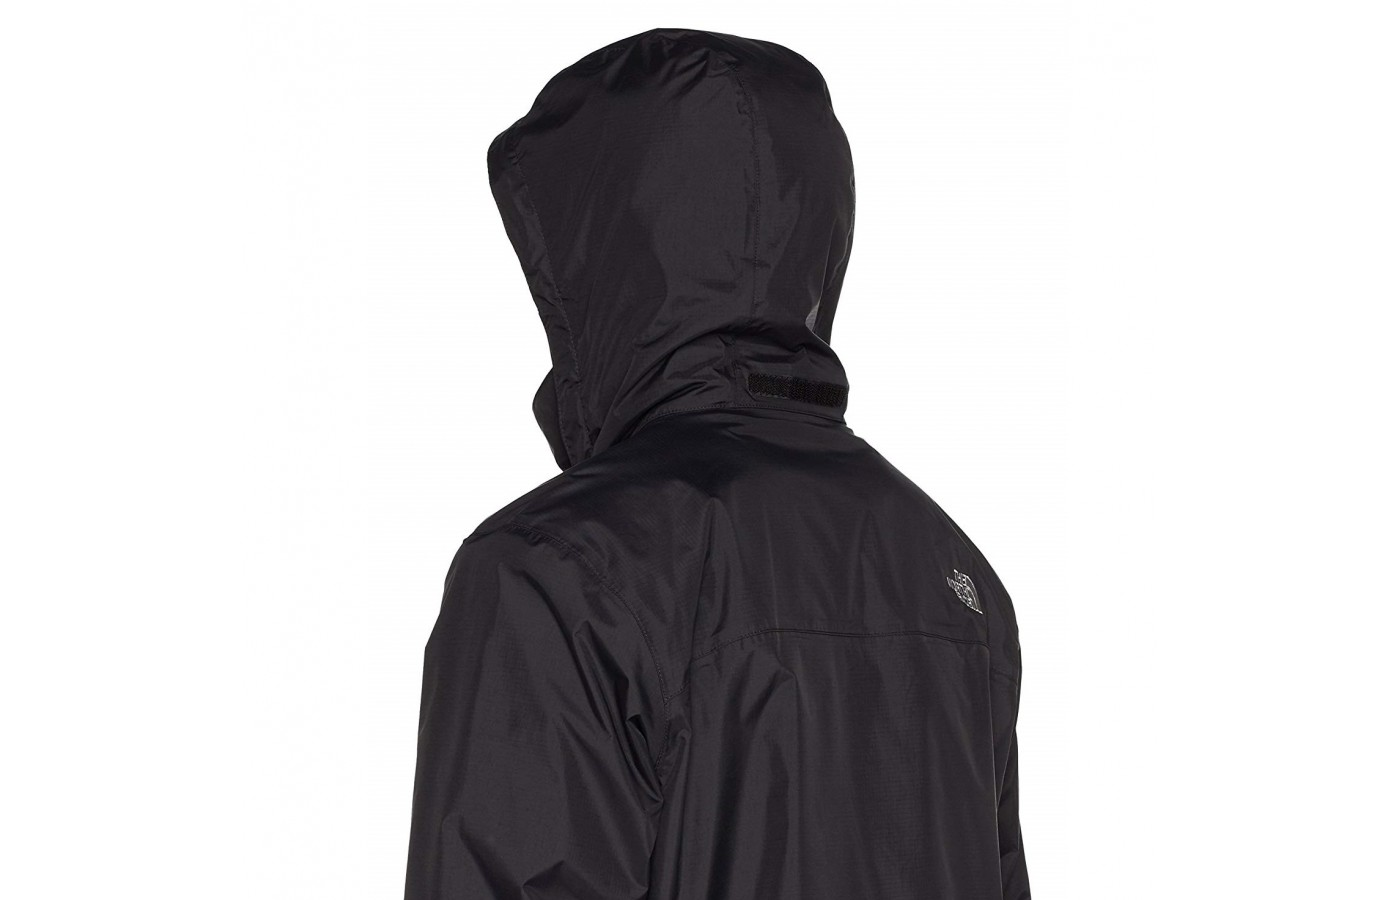 The North Face Resolve 2 offers a waterproof hood to protect the head during rainy days.